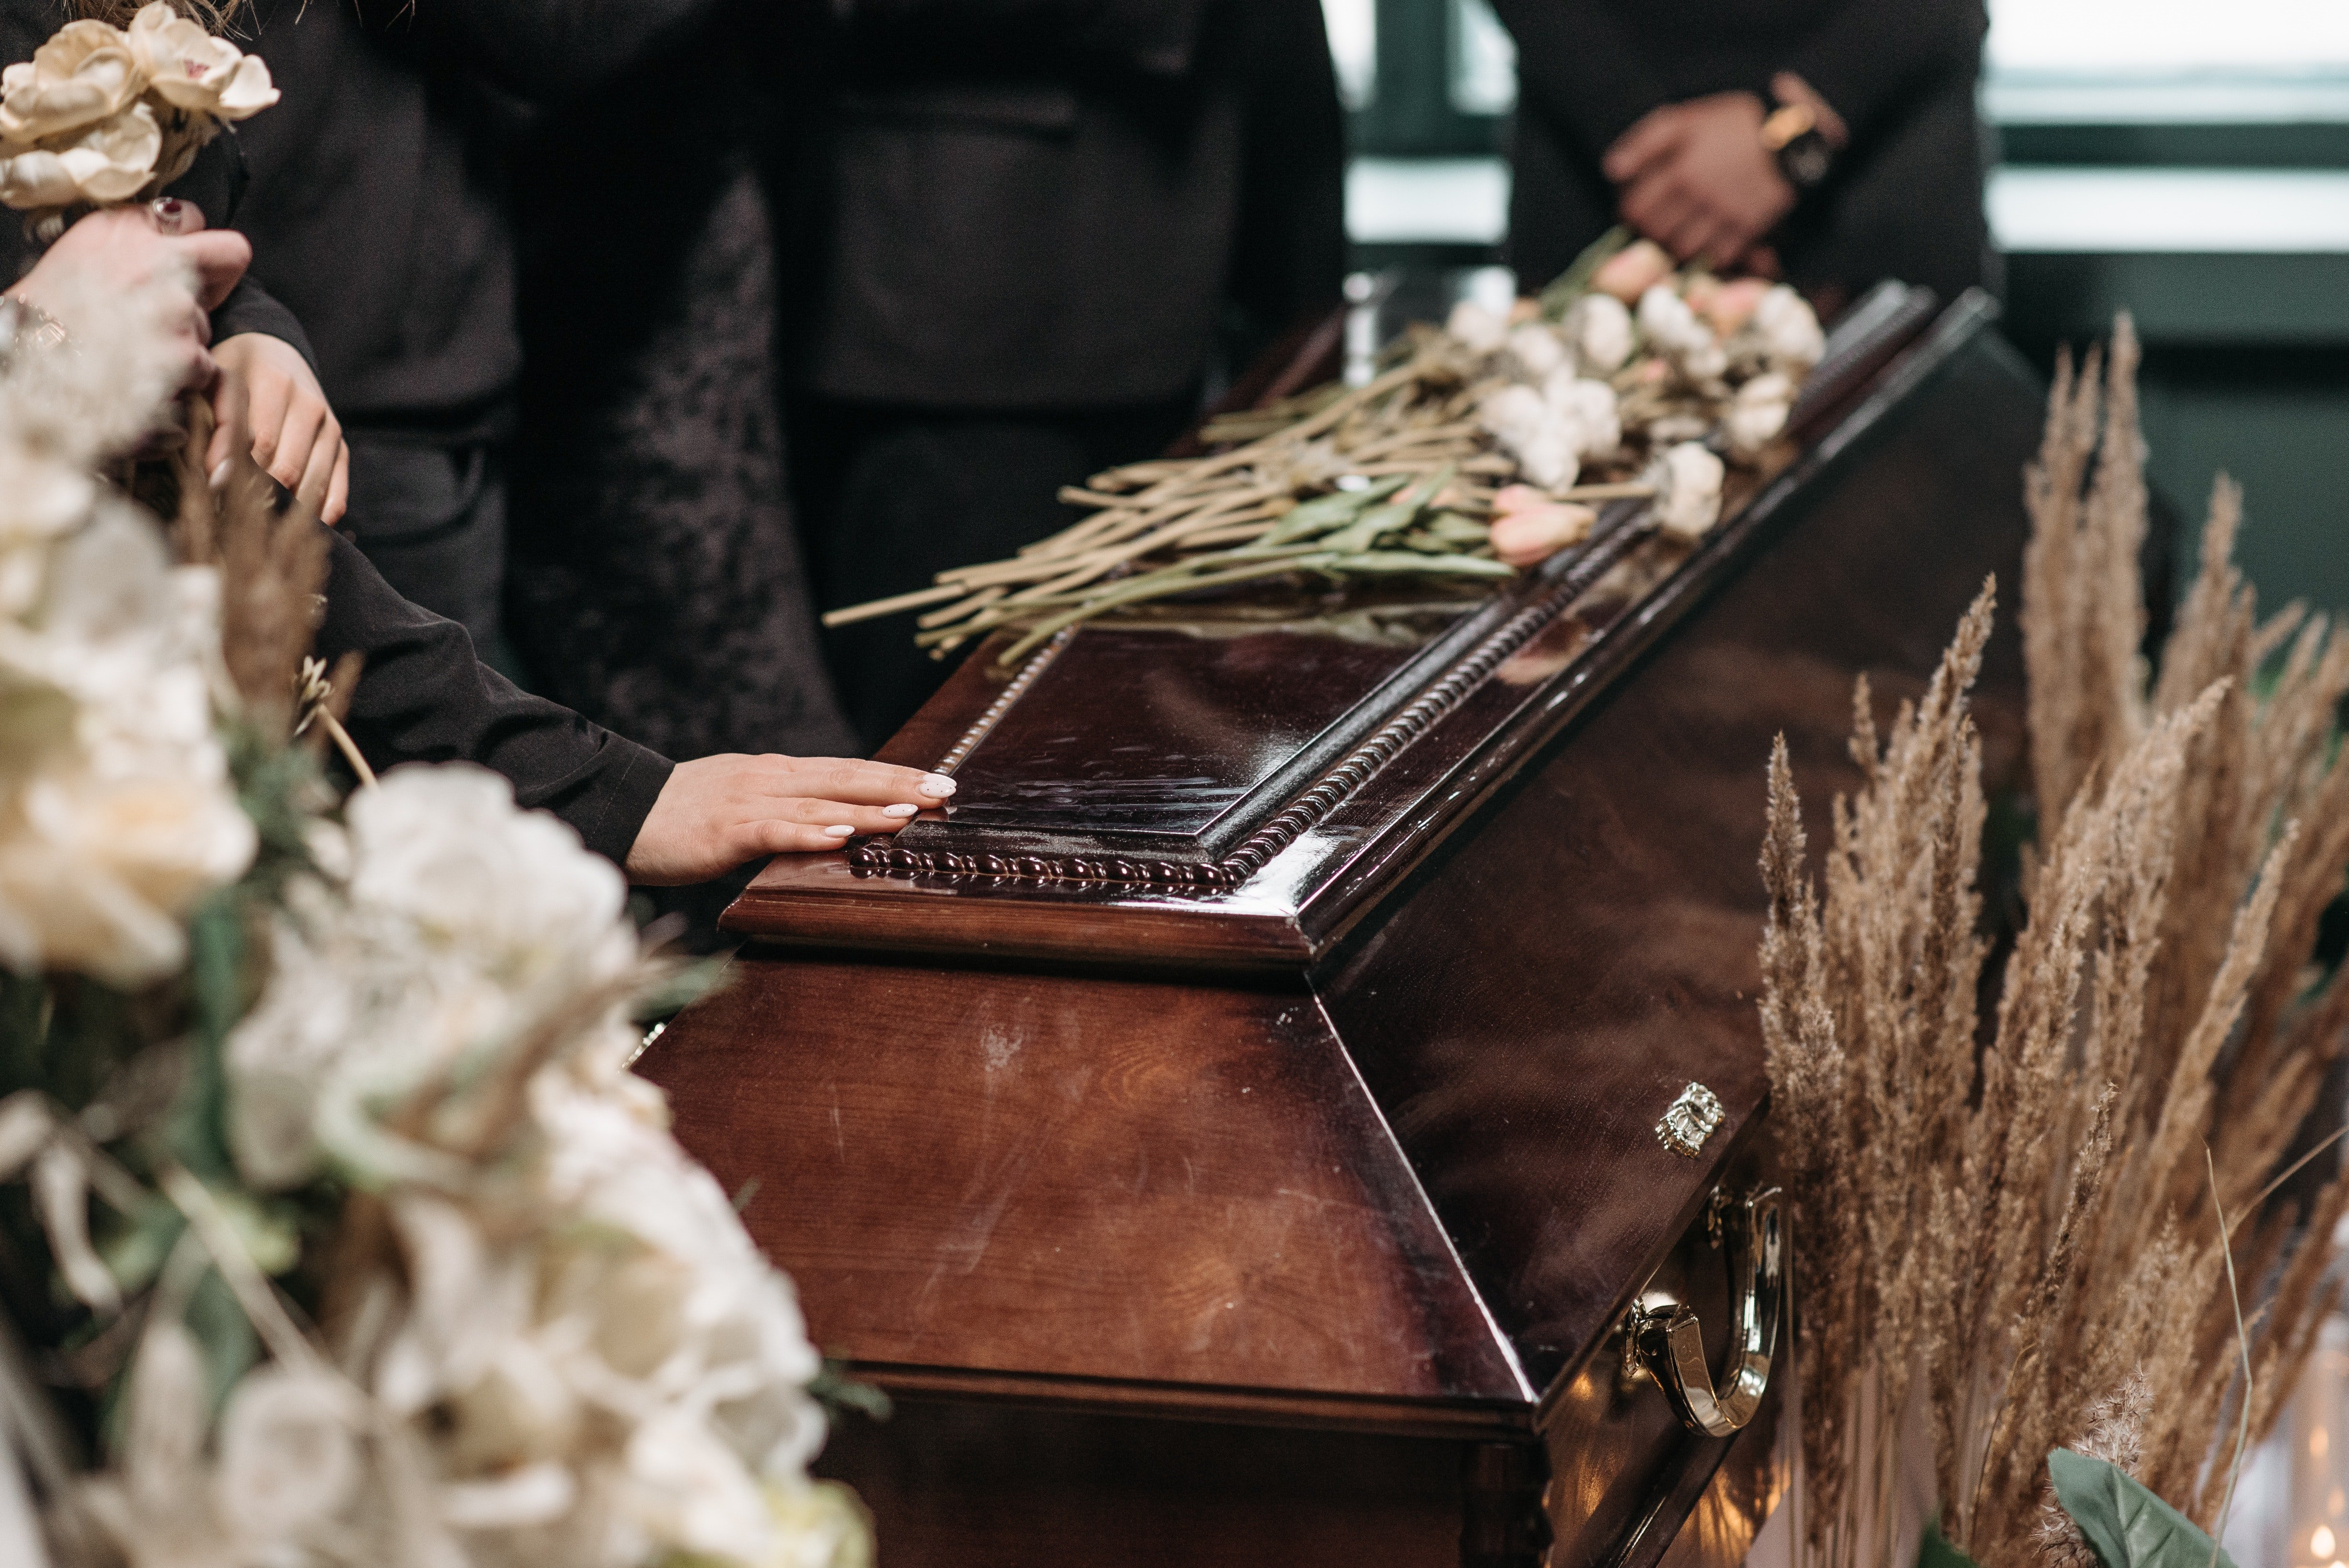 People saying goodbye to a deceased loved one   Photo: Pexels